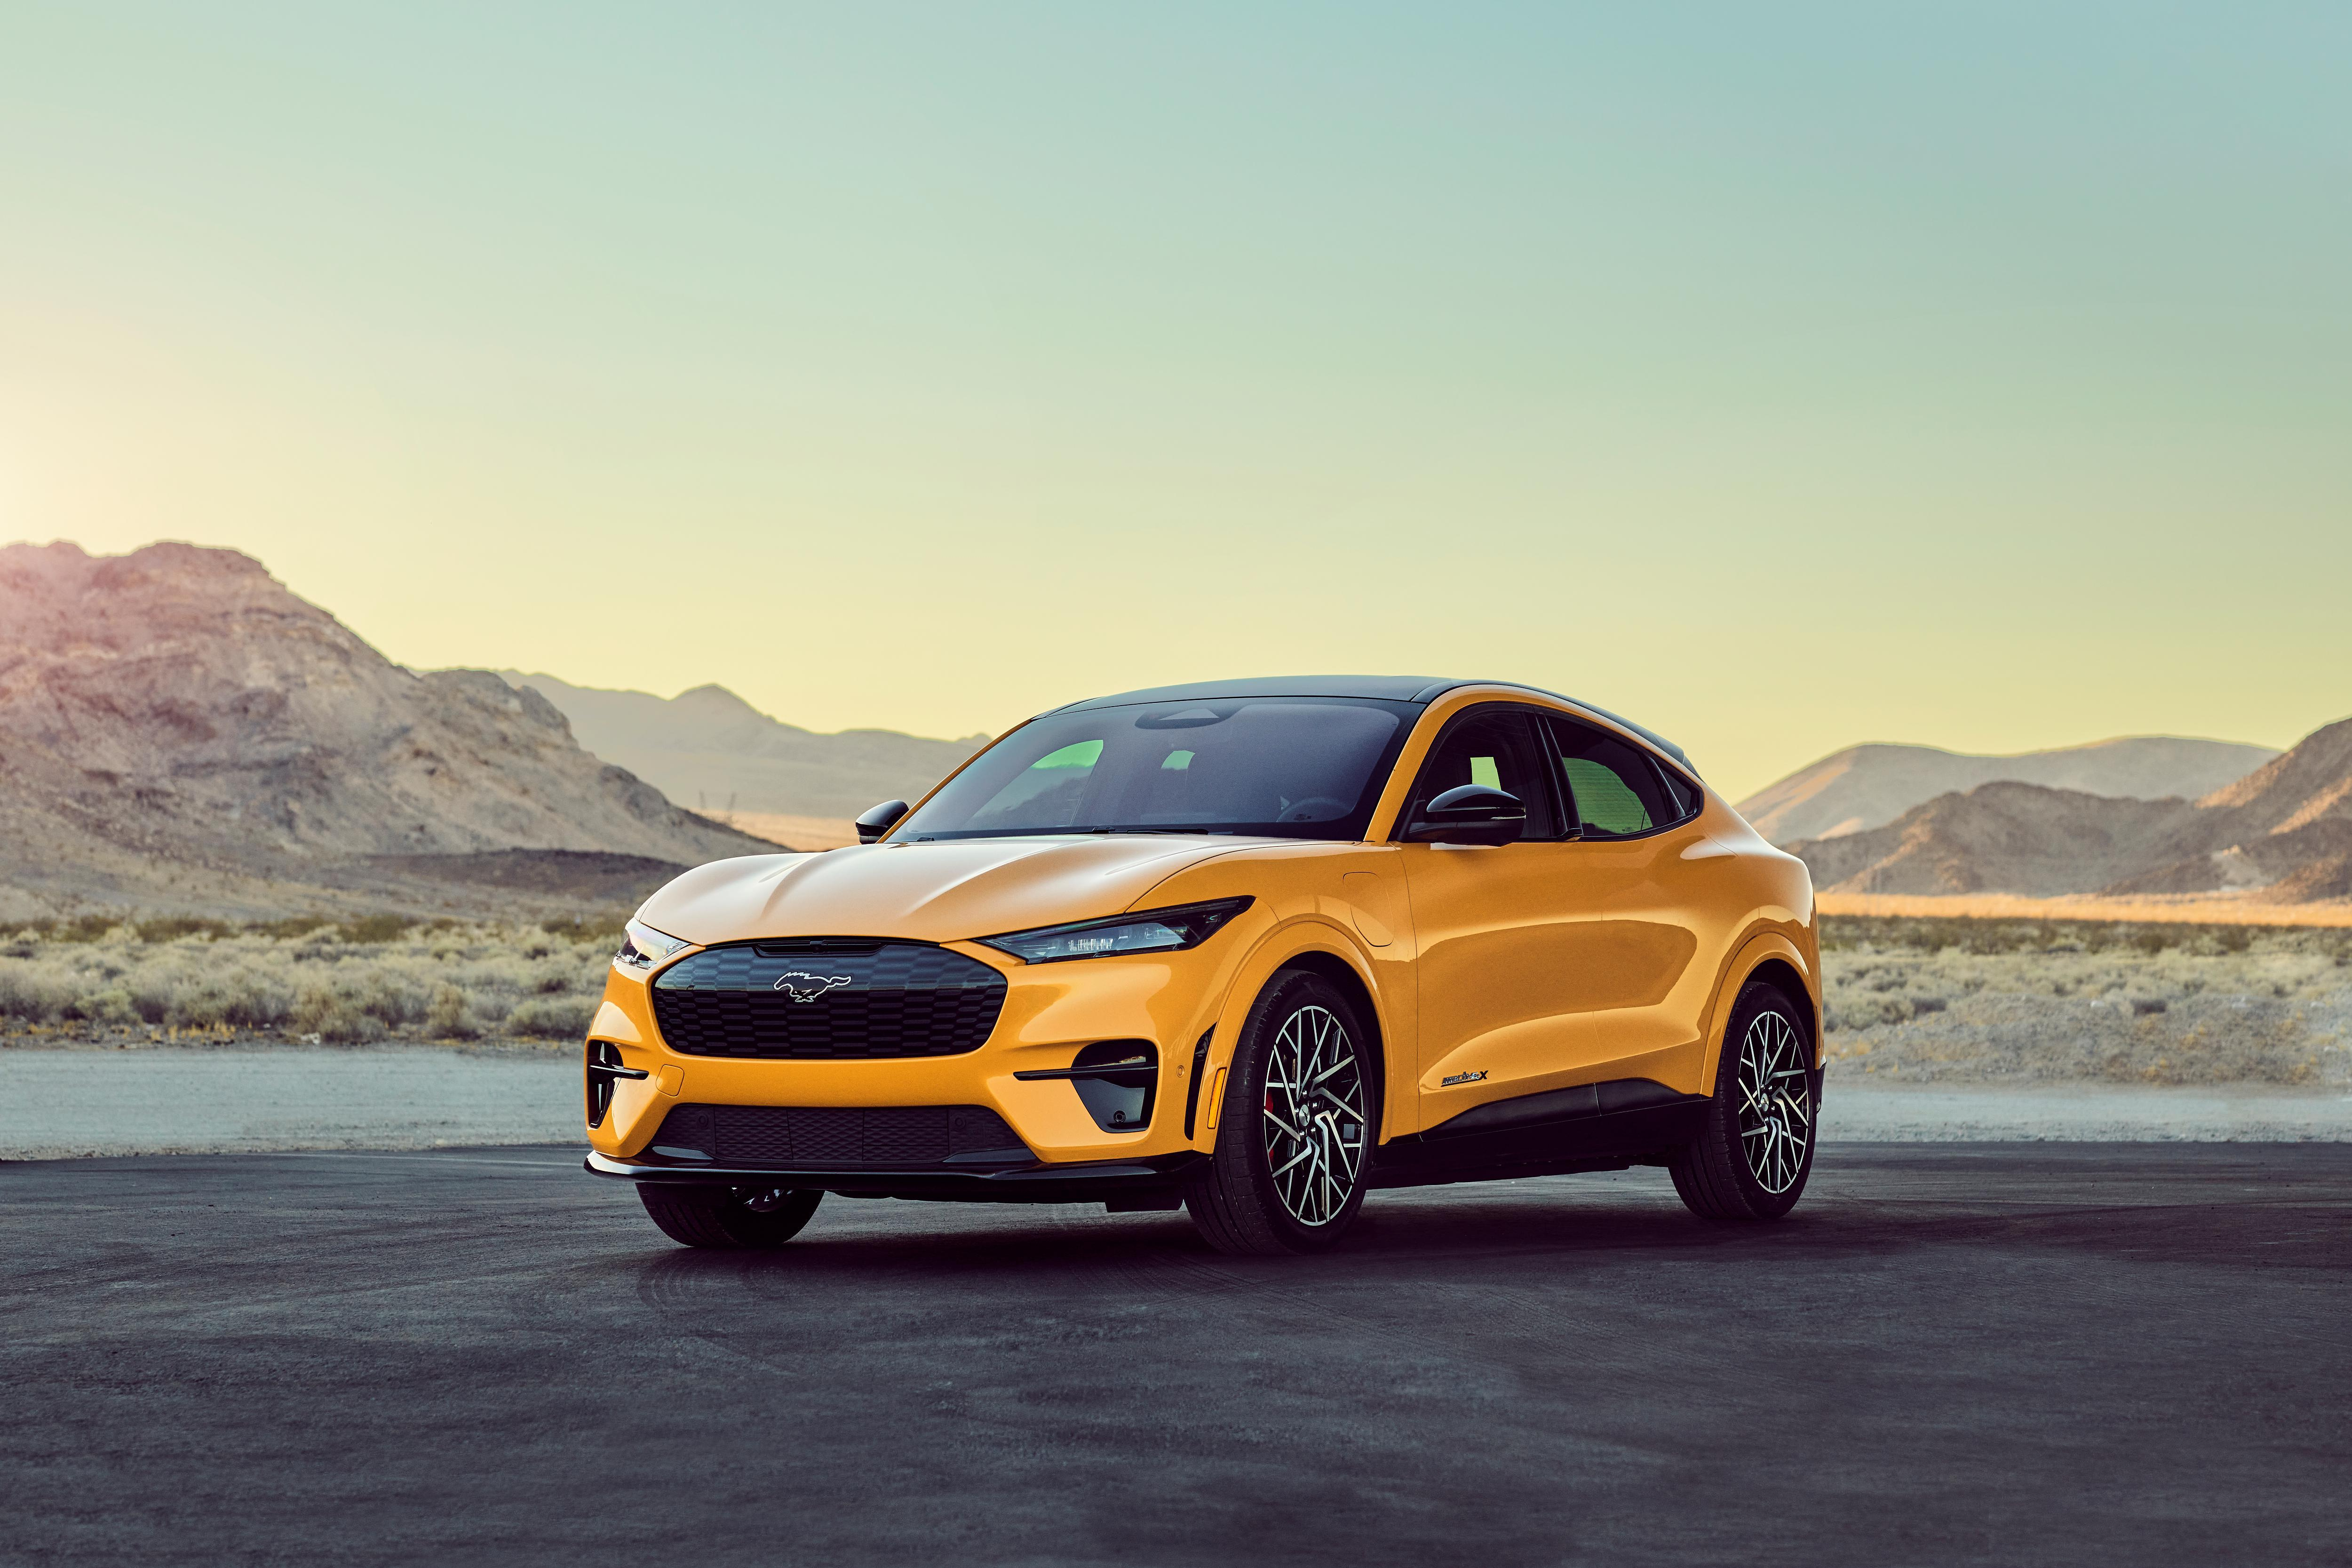 2021 Ford Mustang Mach-E GT Performance Edition - charging